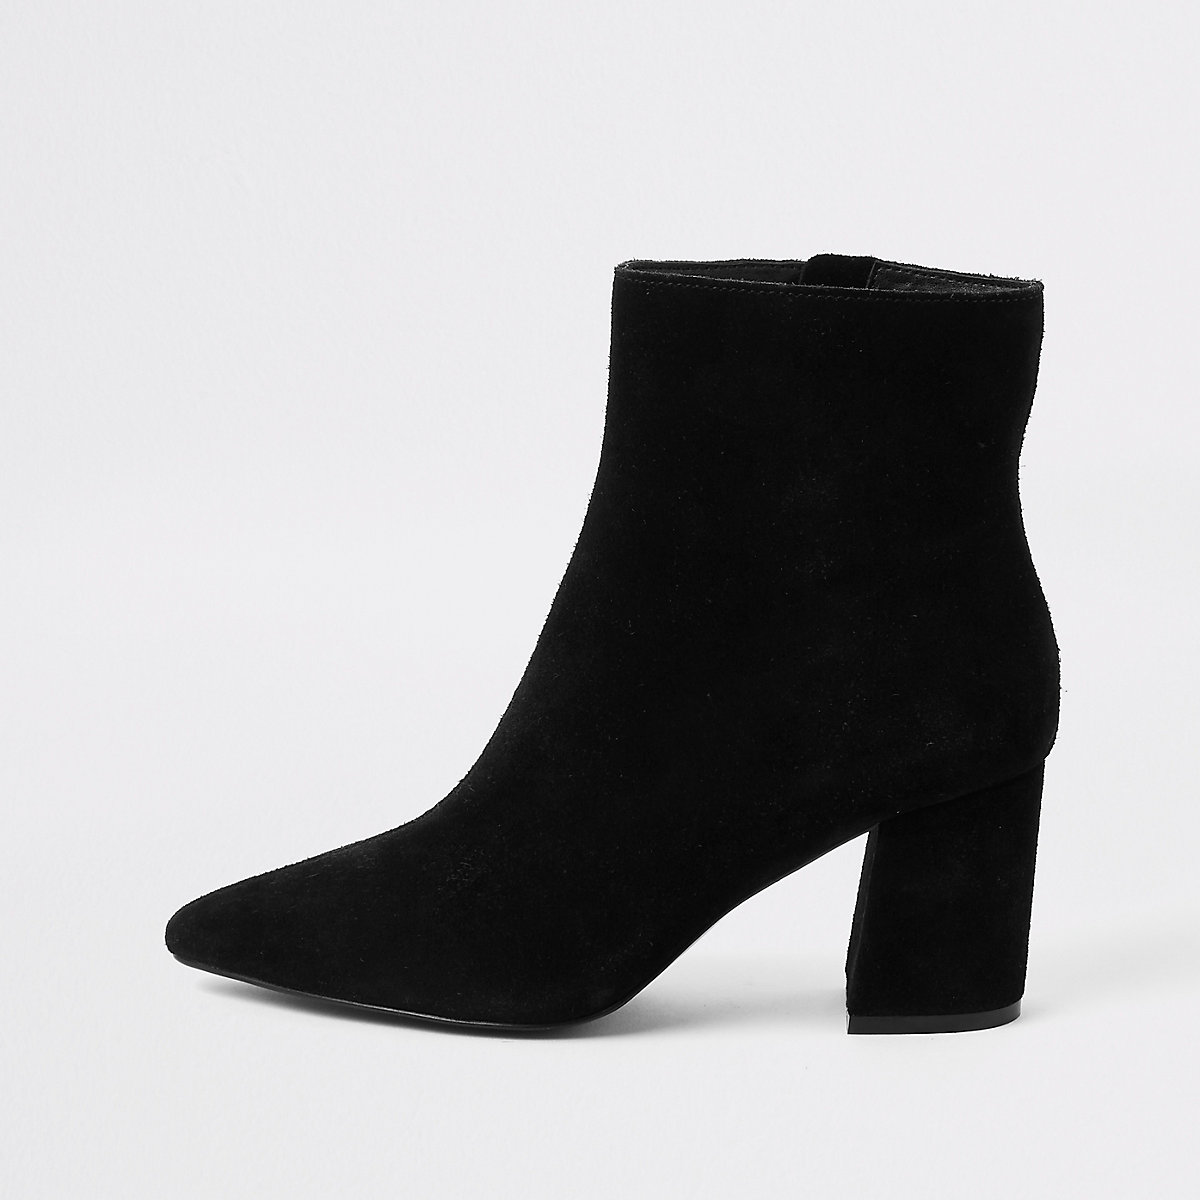 Black suede pointed toe block heel boots